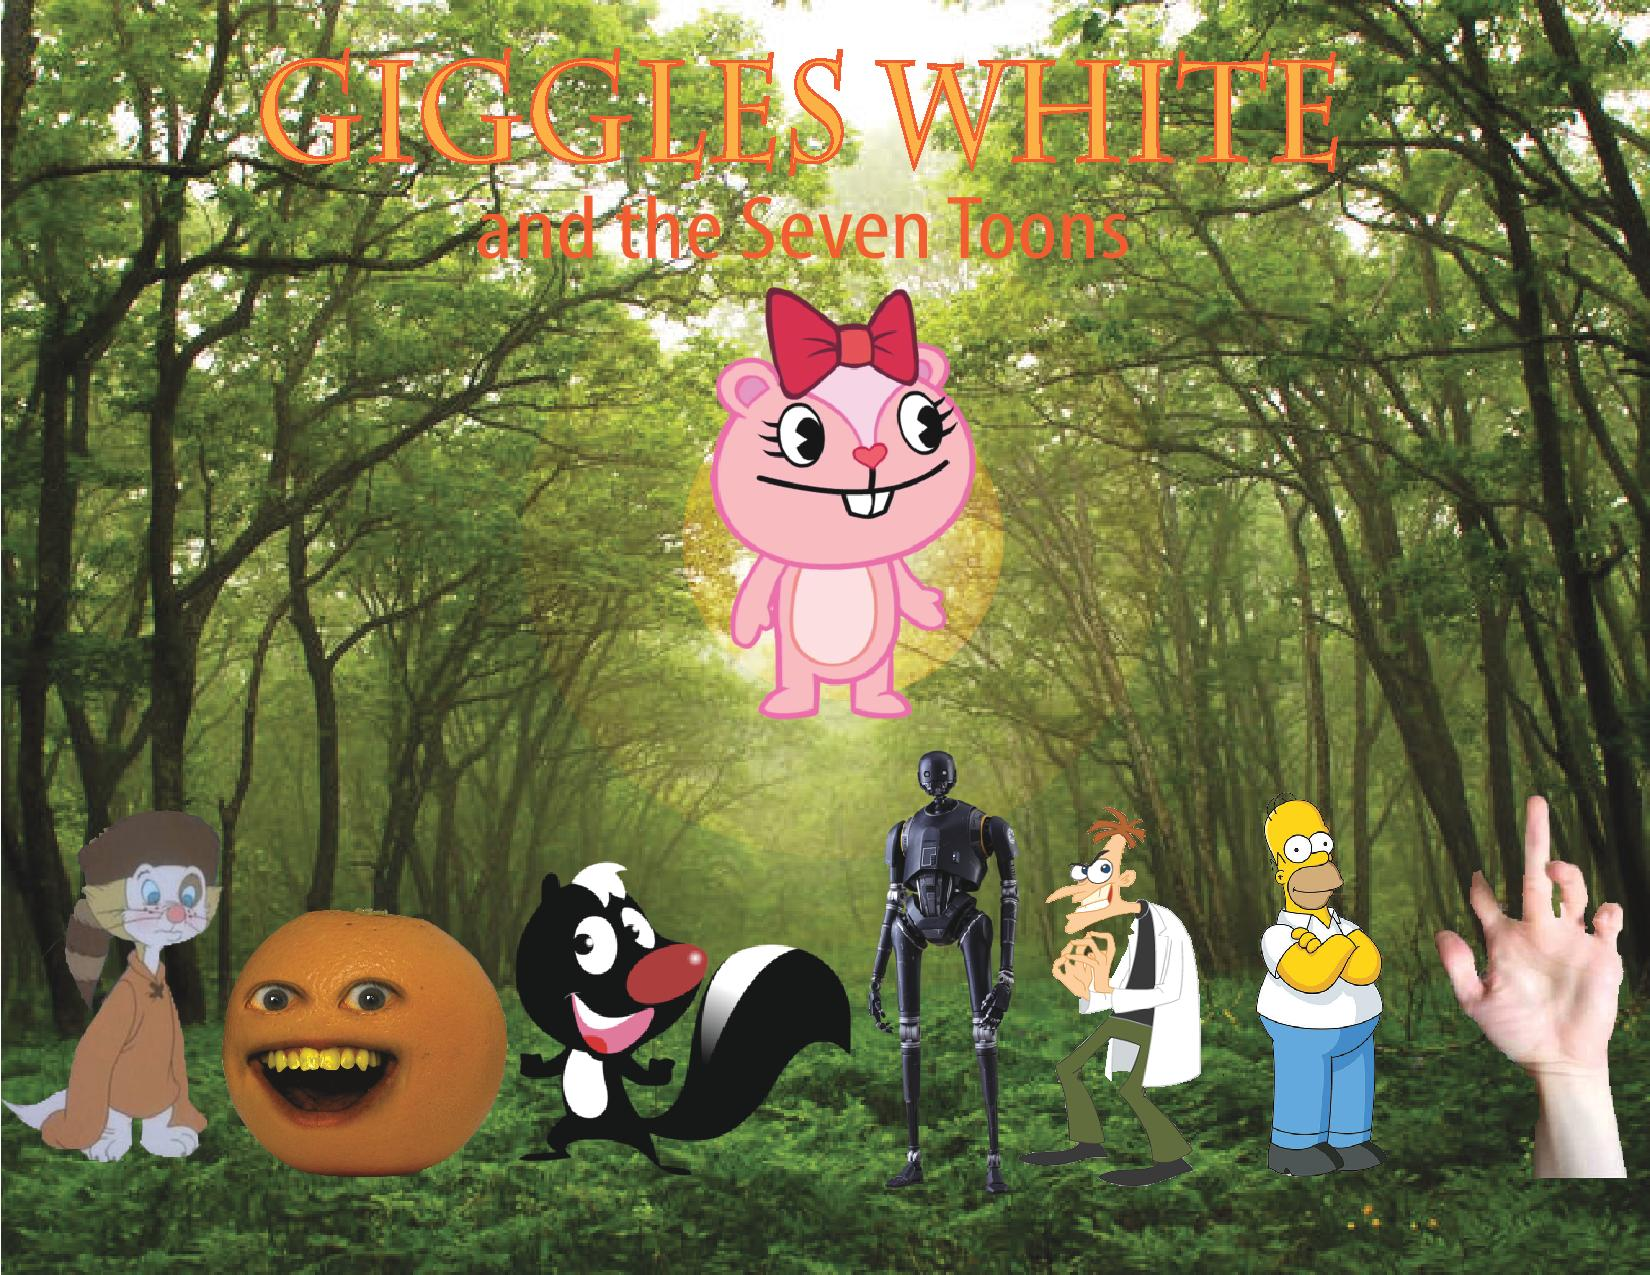 Giggles White and The Seven Toons